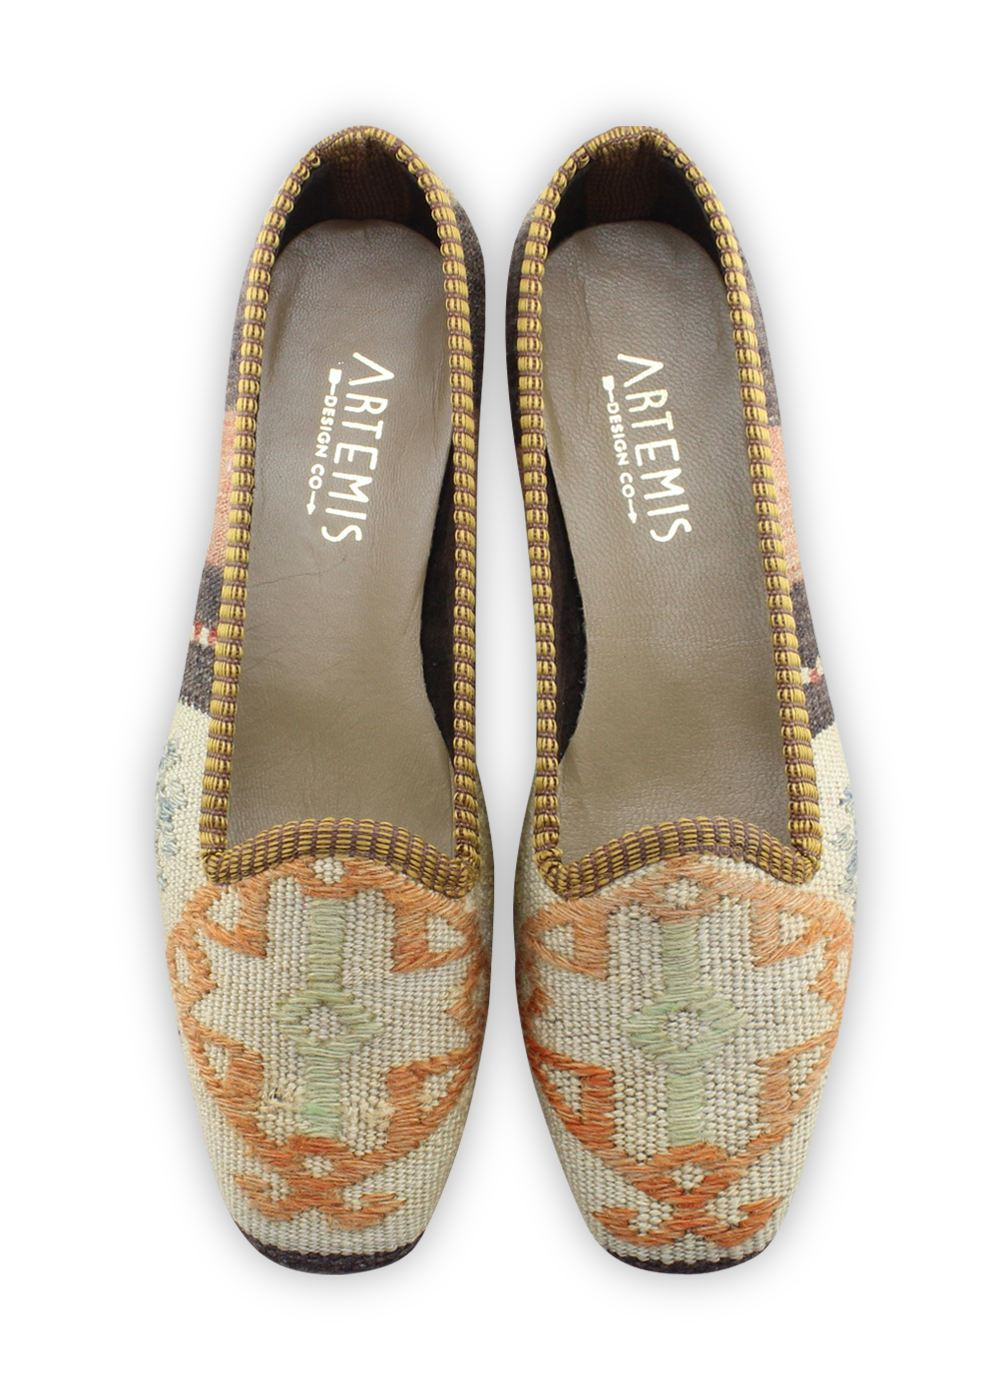 Women's Shoes - Women's Kilim Loafers - Size 40